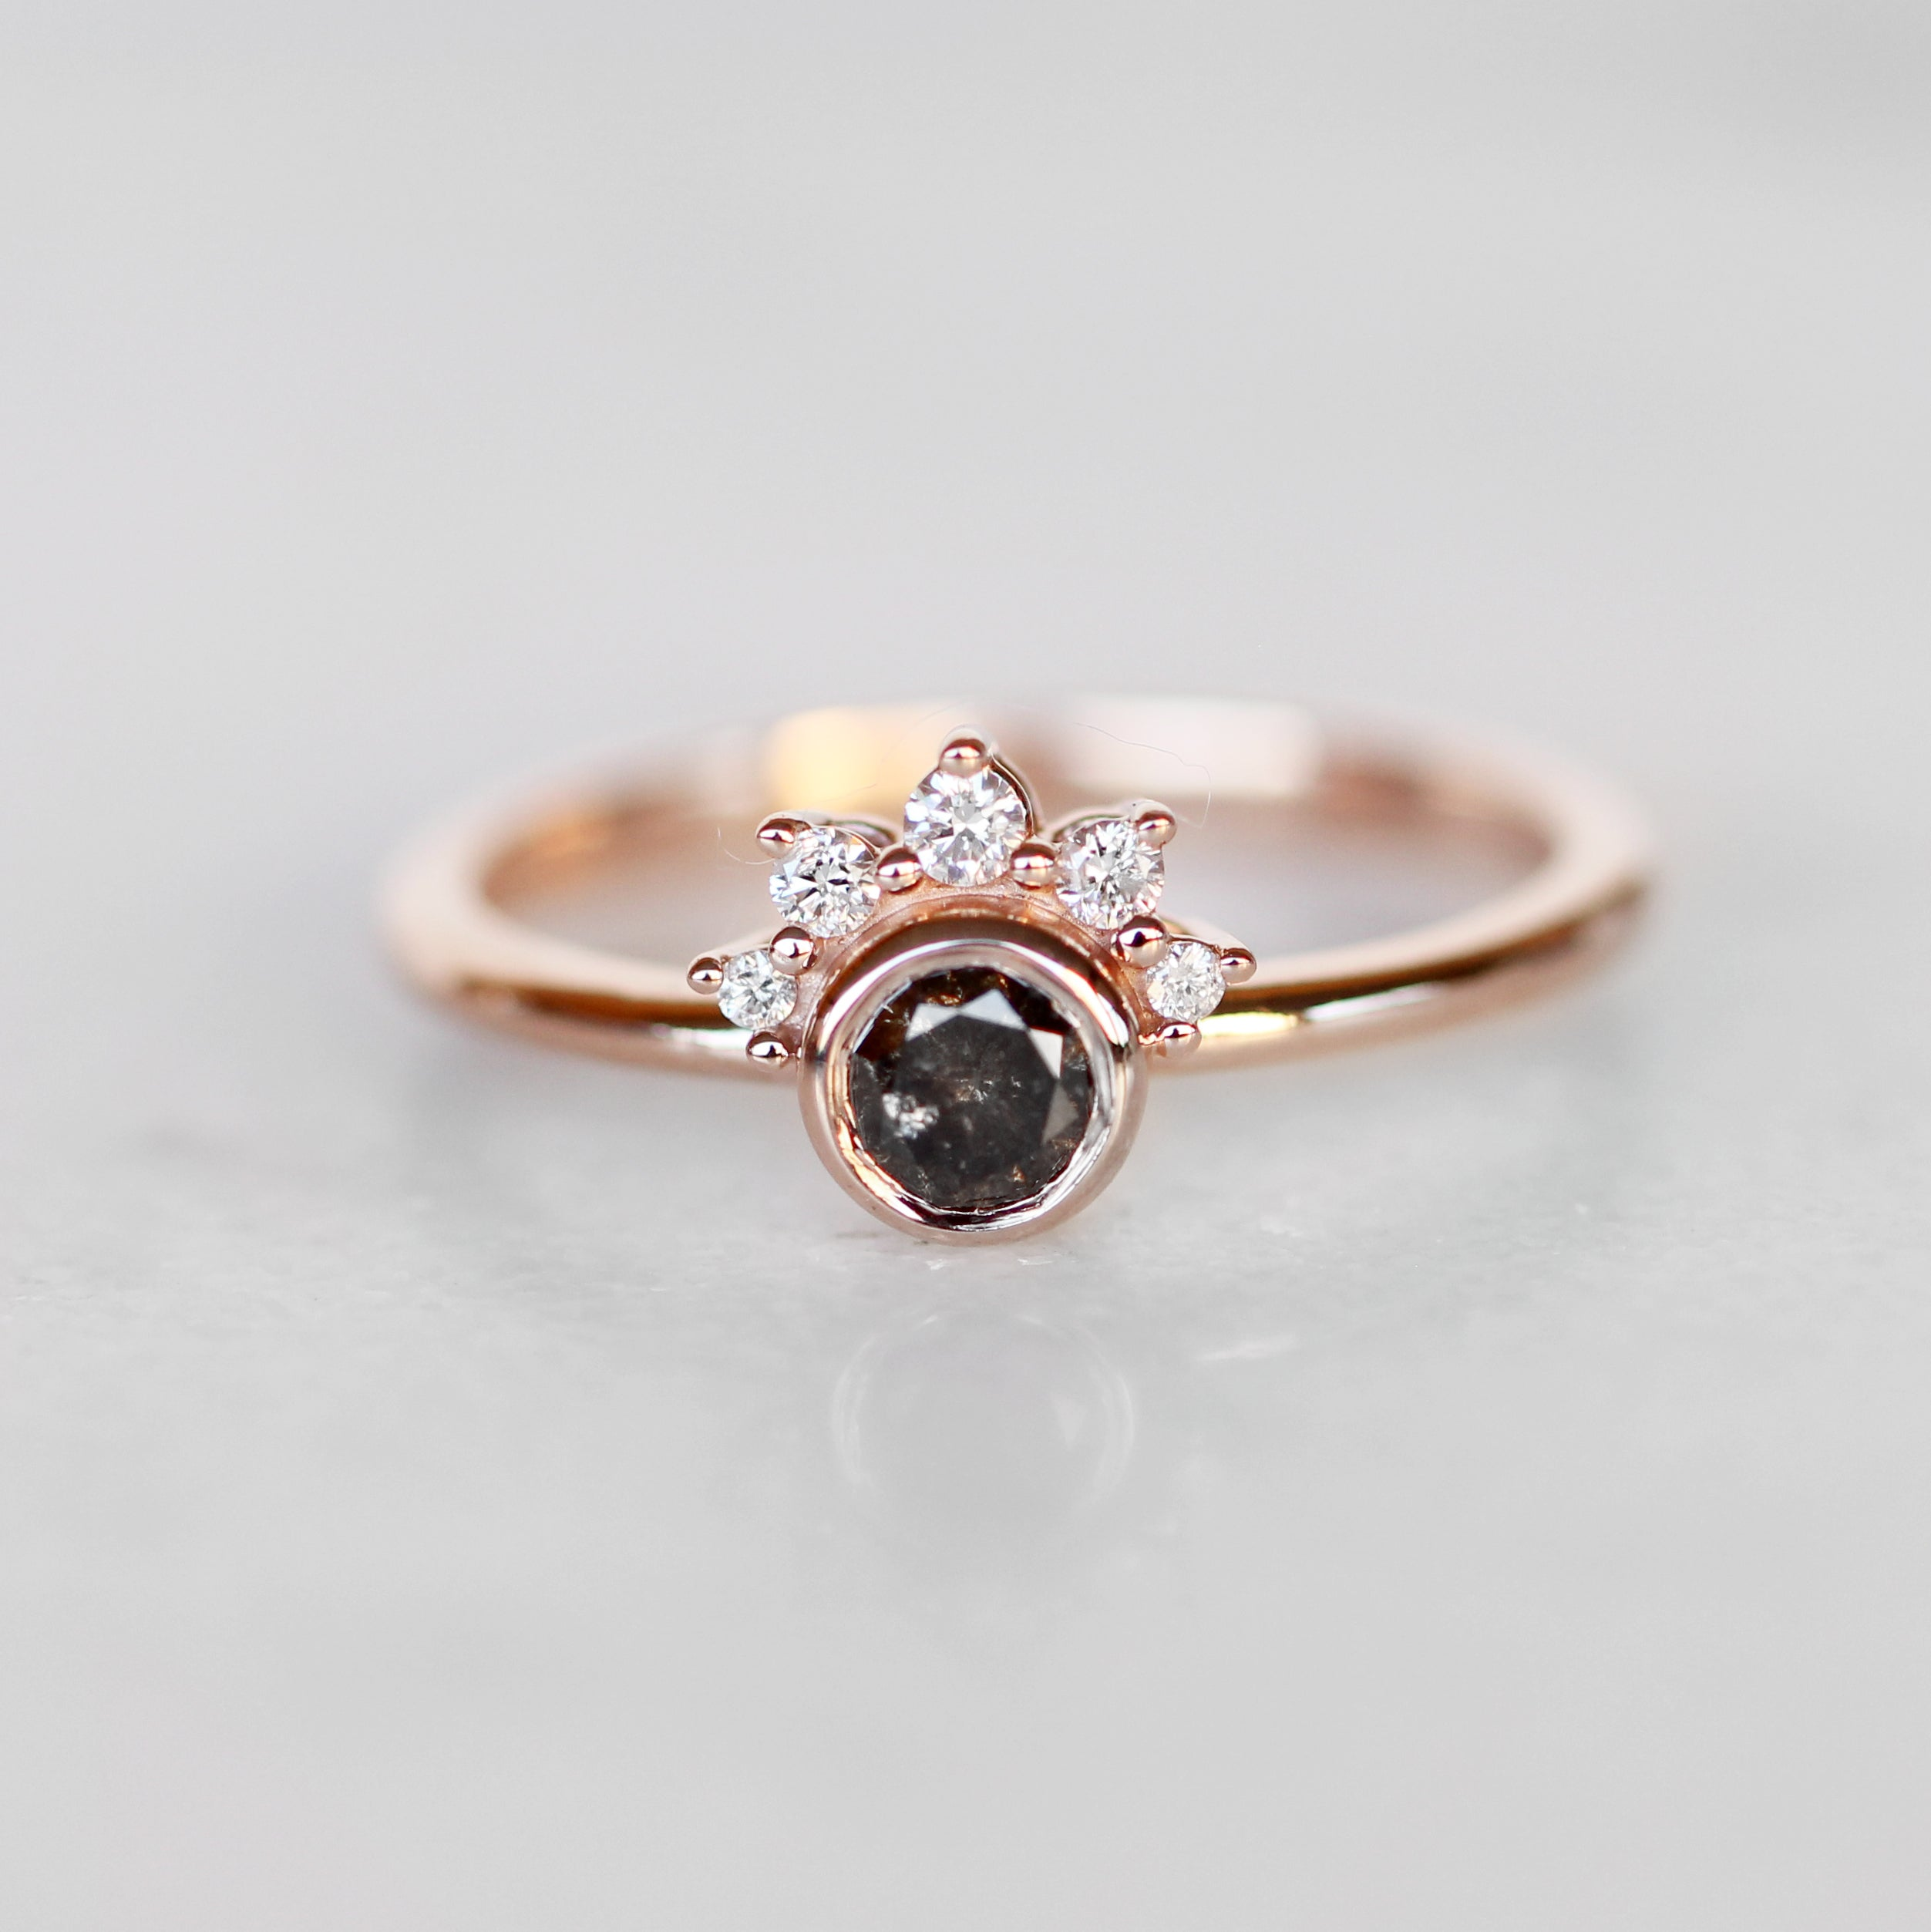 Ashlyn Ring with Black Celestial Diamond in 10k Rose Gold- Ready to Size and Ship - Salt & Pepper Celestial Diamond Engagement Rings and Wedding Bands  by Midwinter Co.